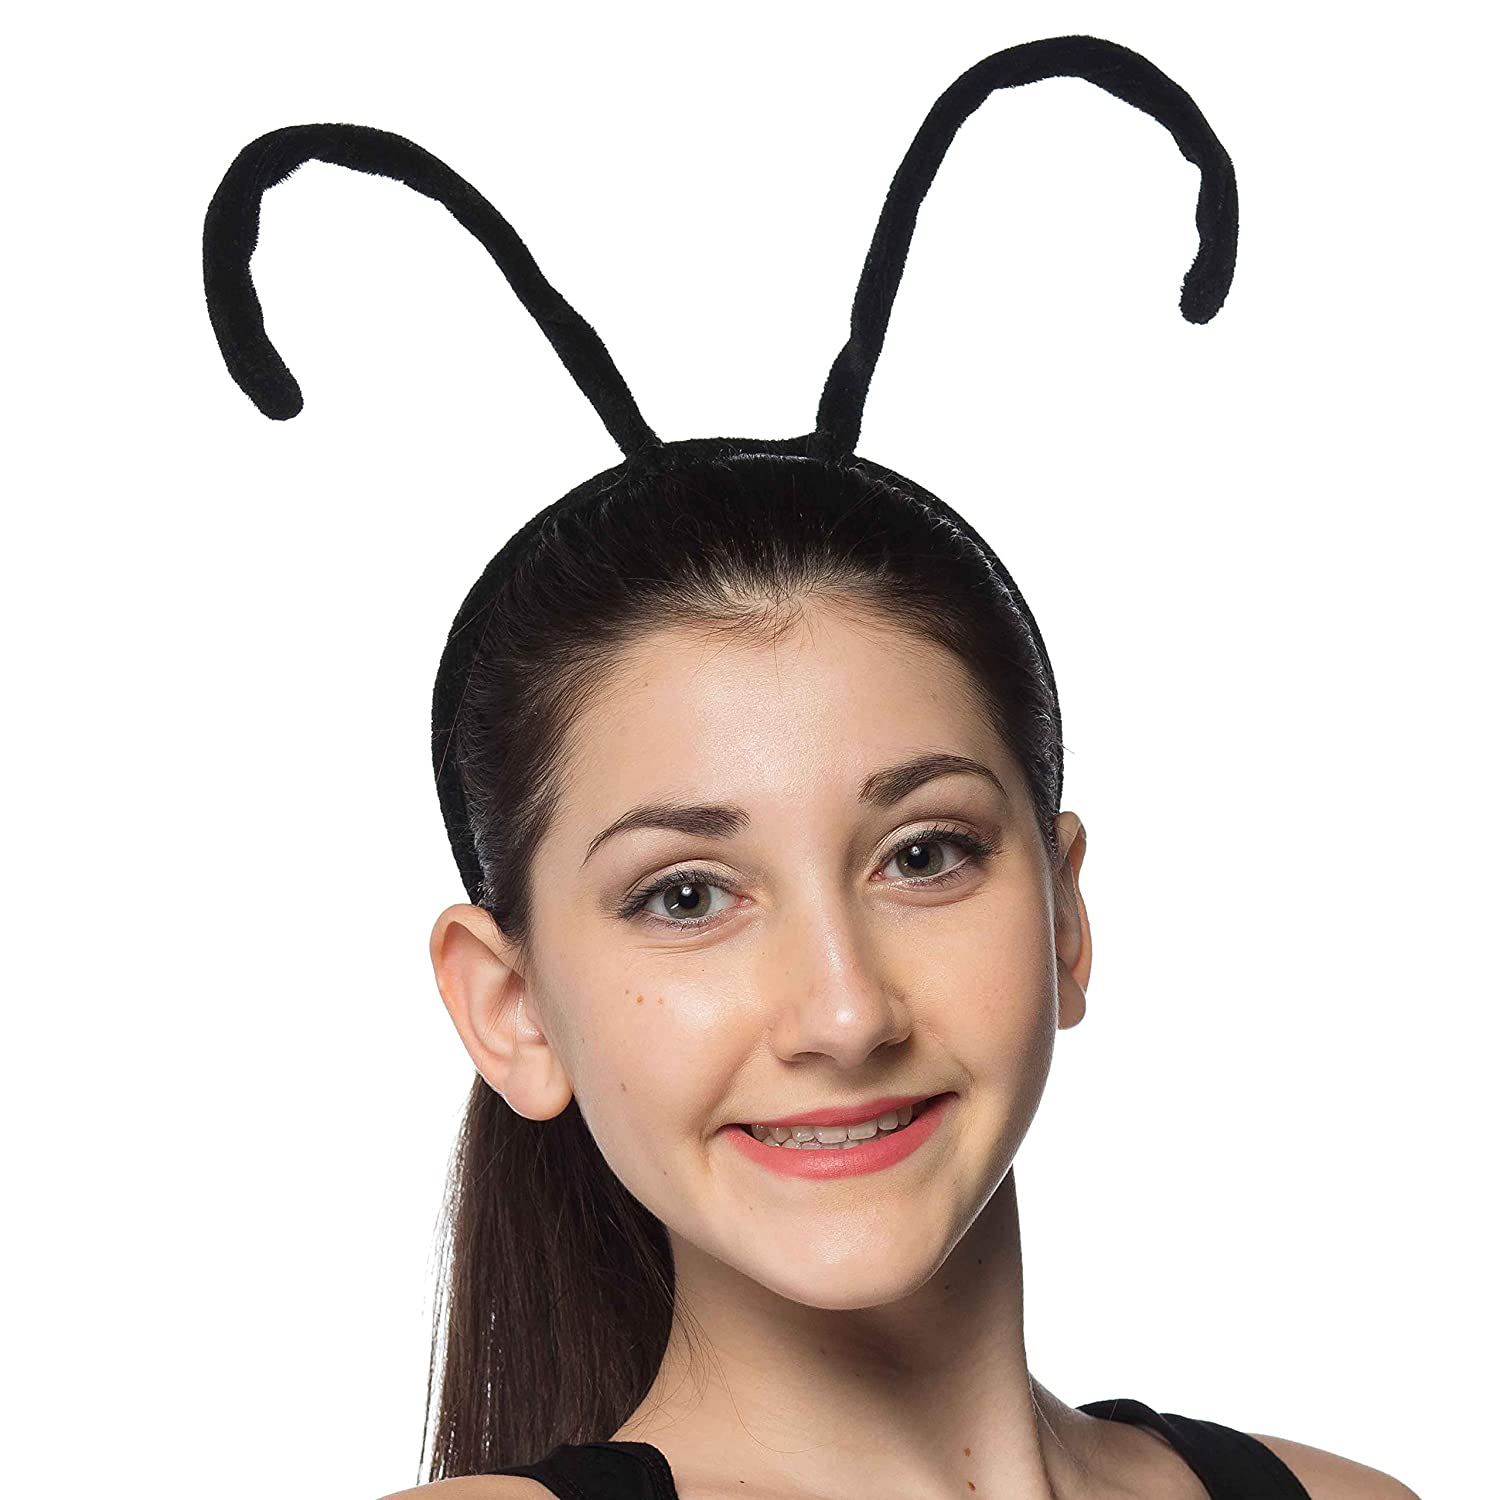 Largemouth Antenna Headband Bee Butterfly Insect Bug Costume Accessory 76-8355